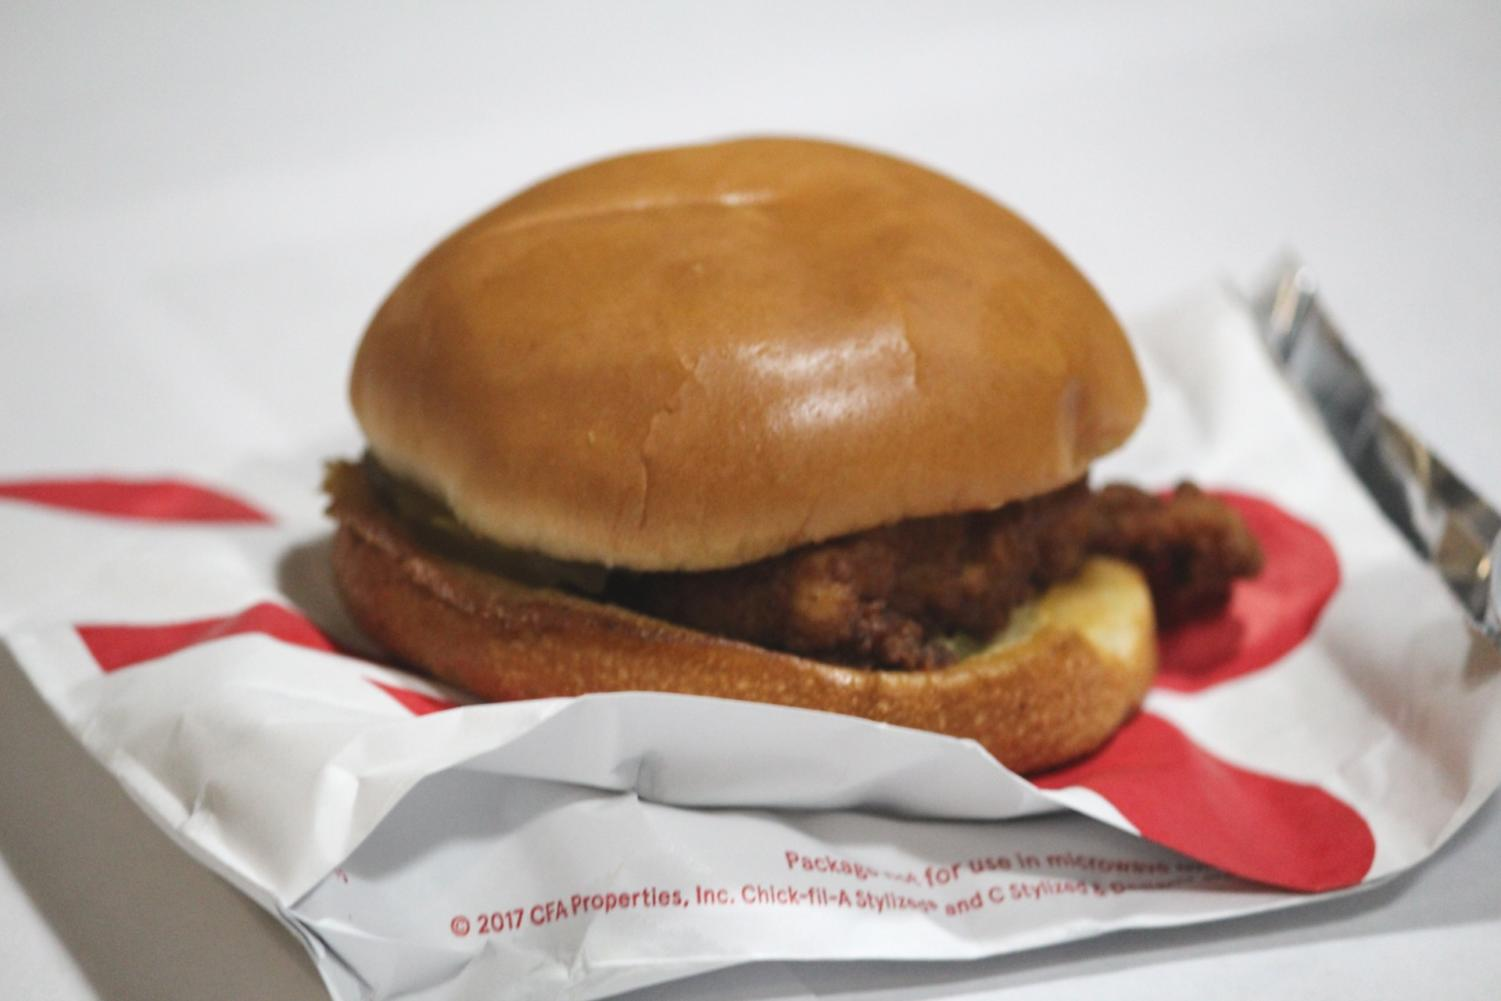 Chick-fil-A has a popular chicken sandwich but Popeyes is gaining in popularity with a new sandwich.